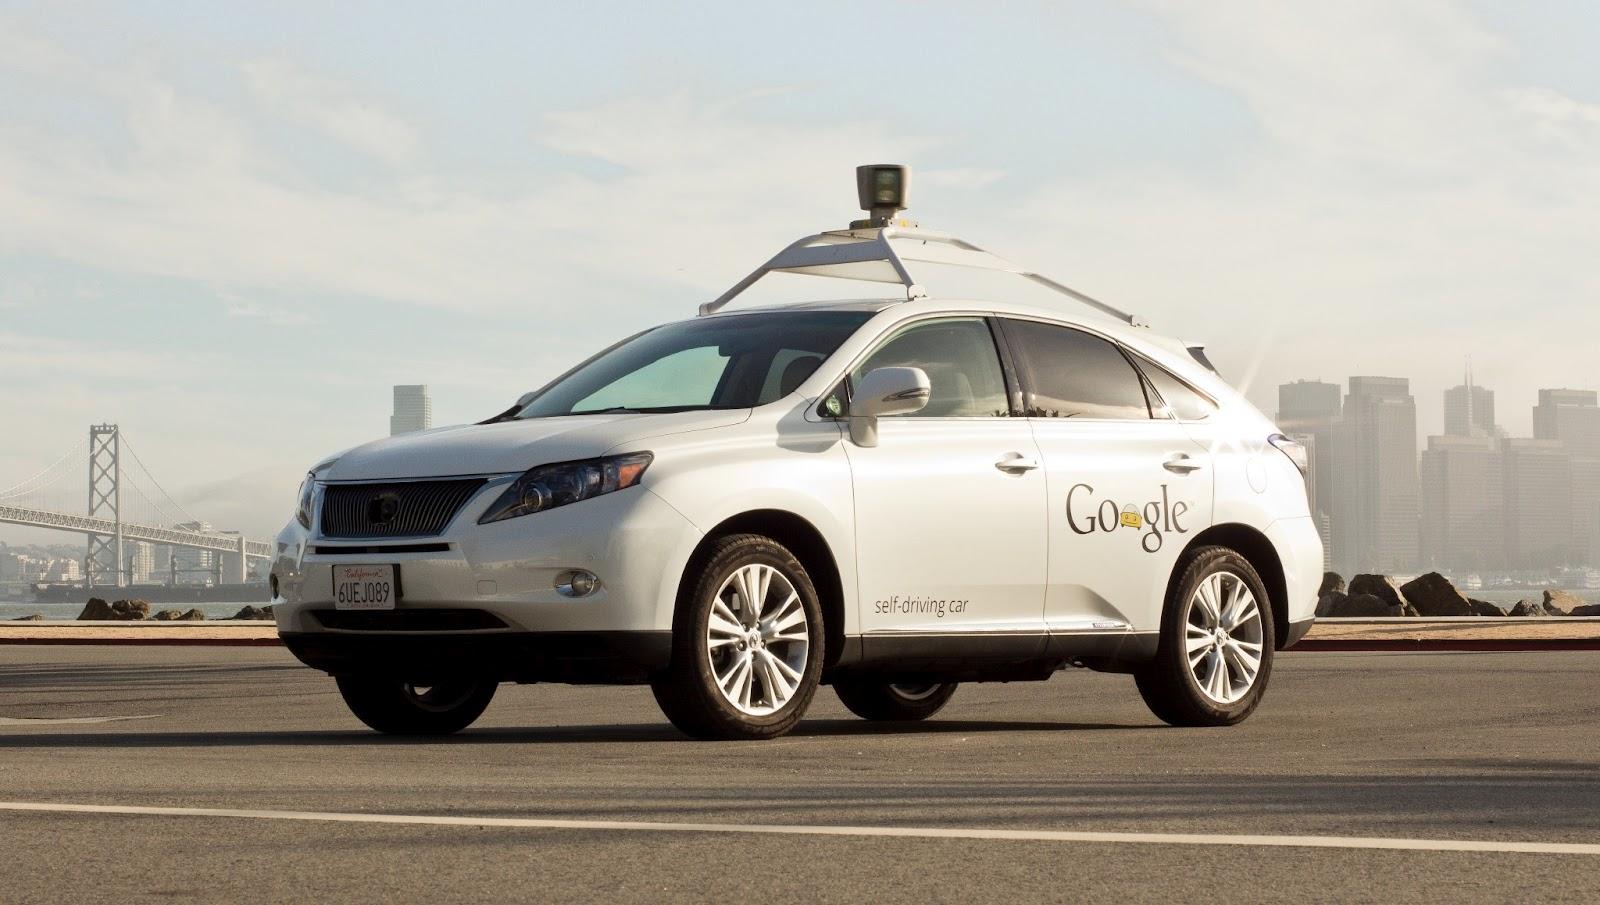 Ontario new test site for self driving vehicles, Youngs Insurance, Ontario